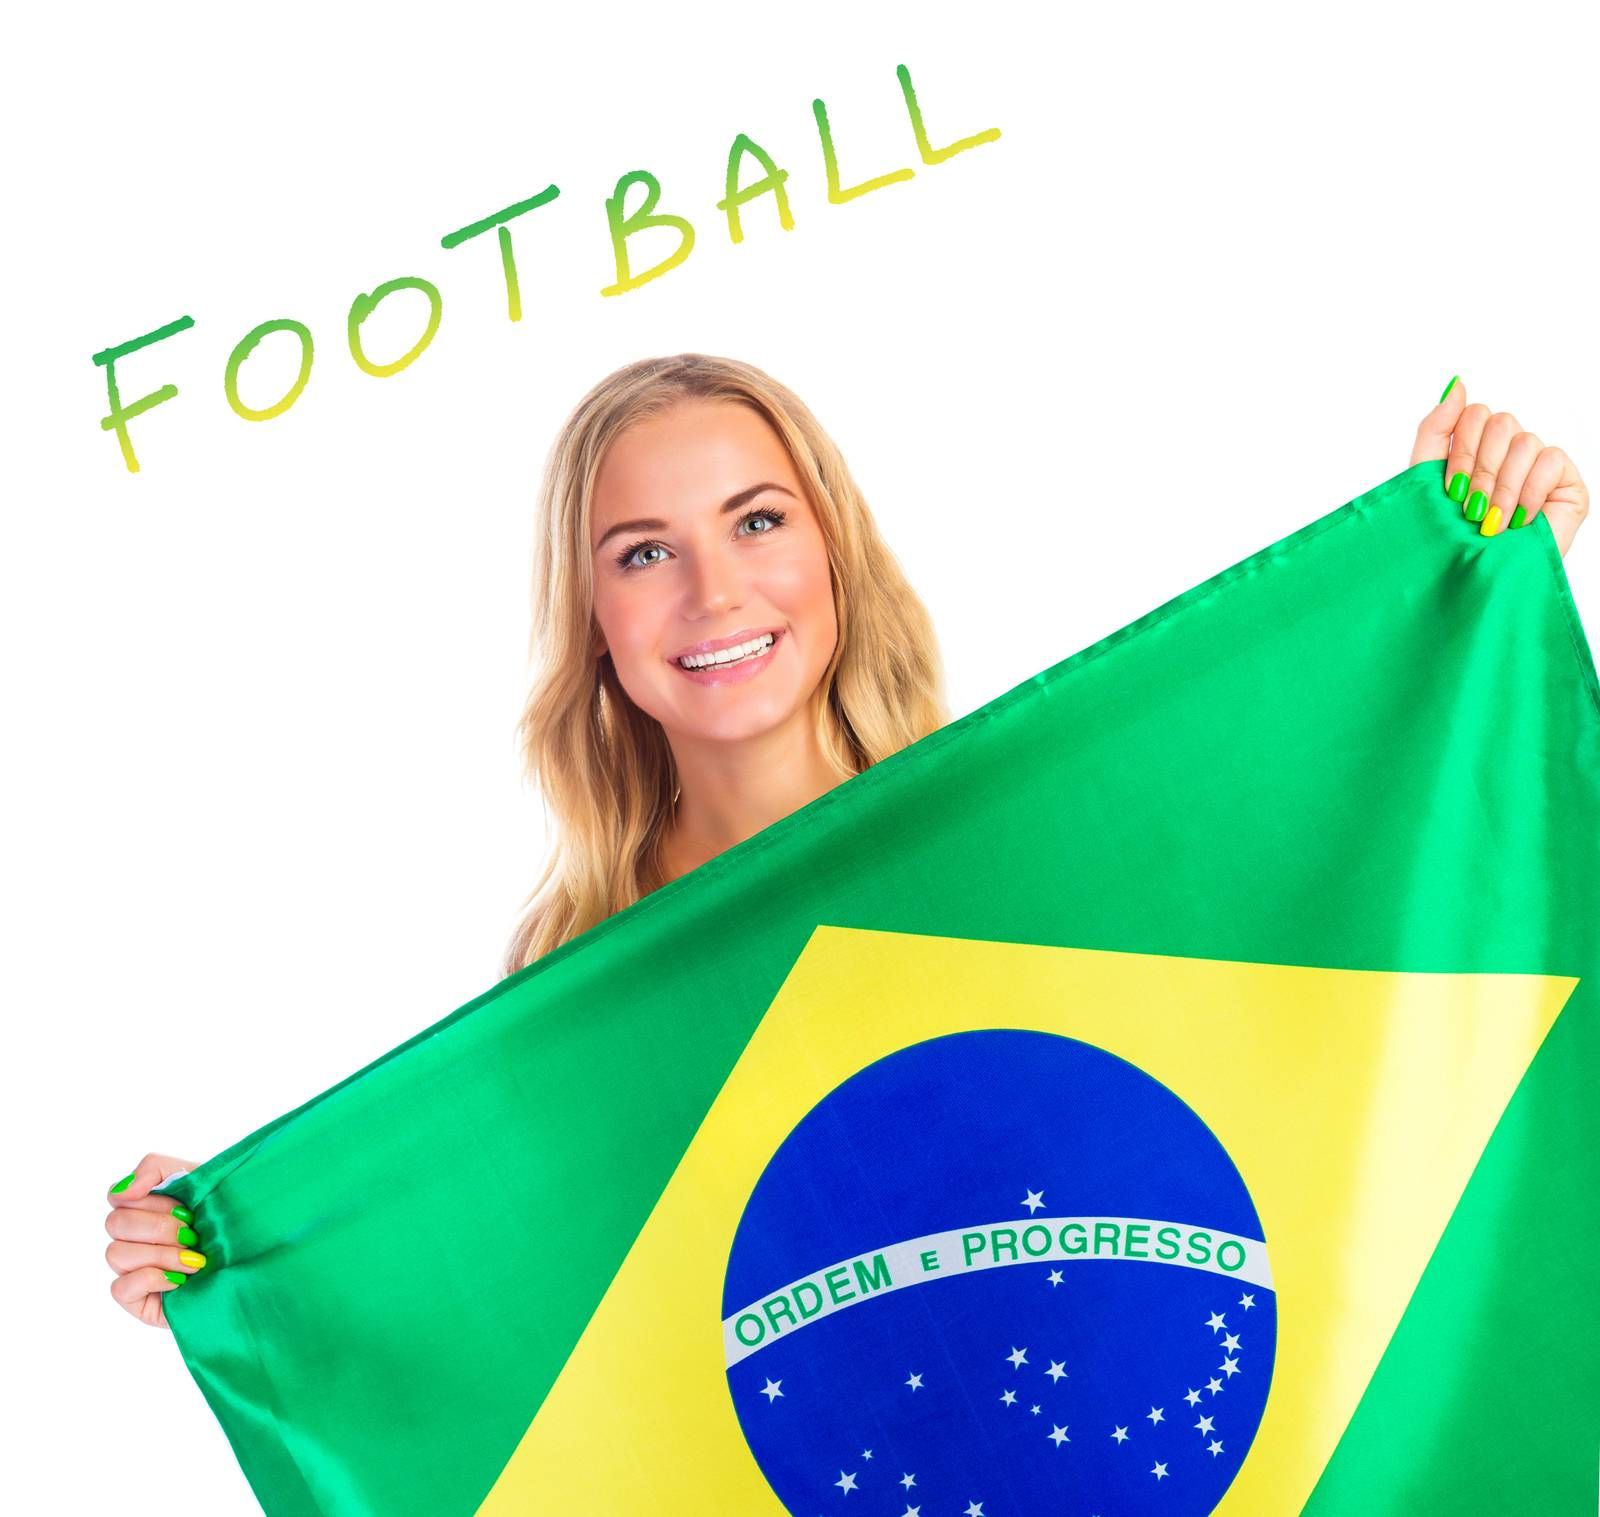 adult, attractive, background, ball, beautiful, brazil - D13884168